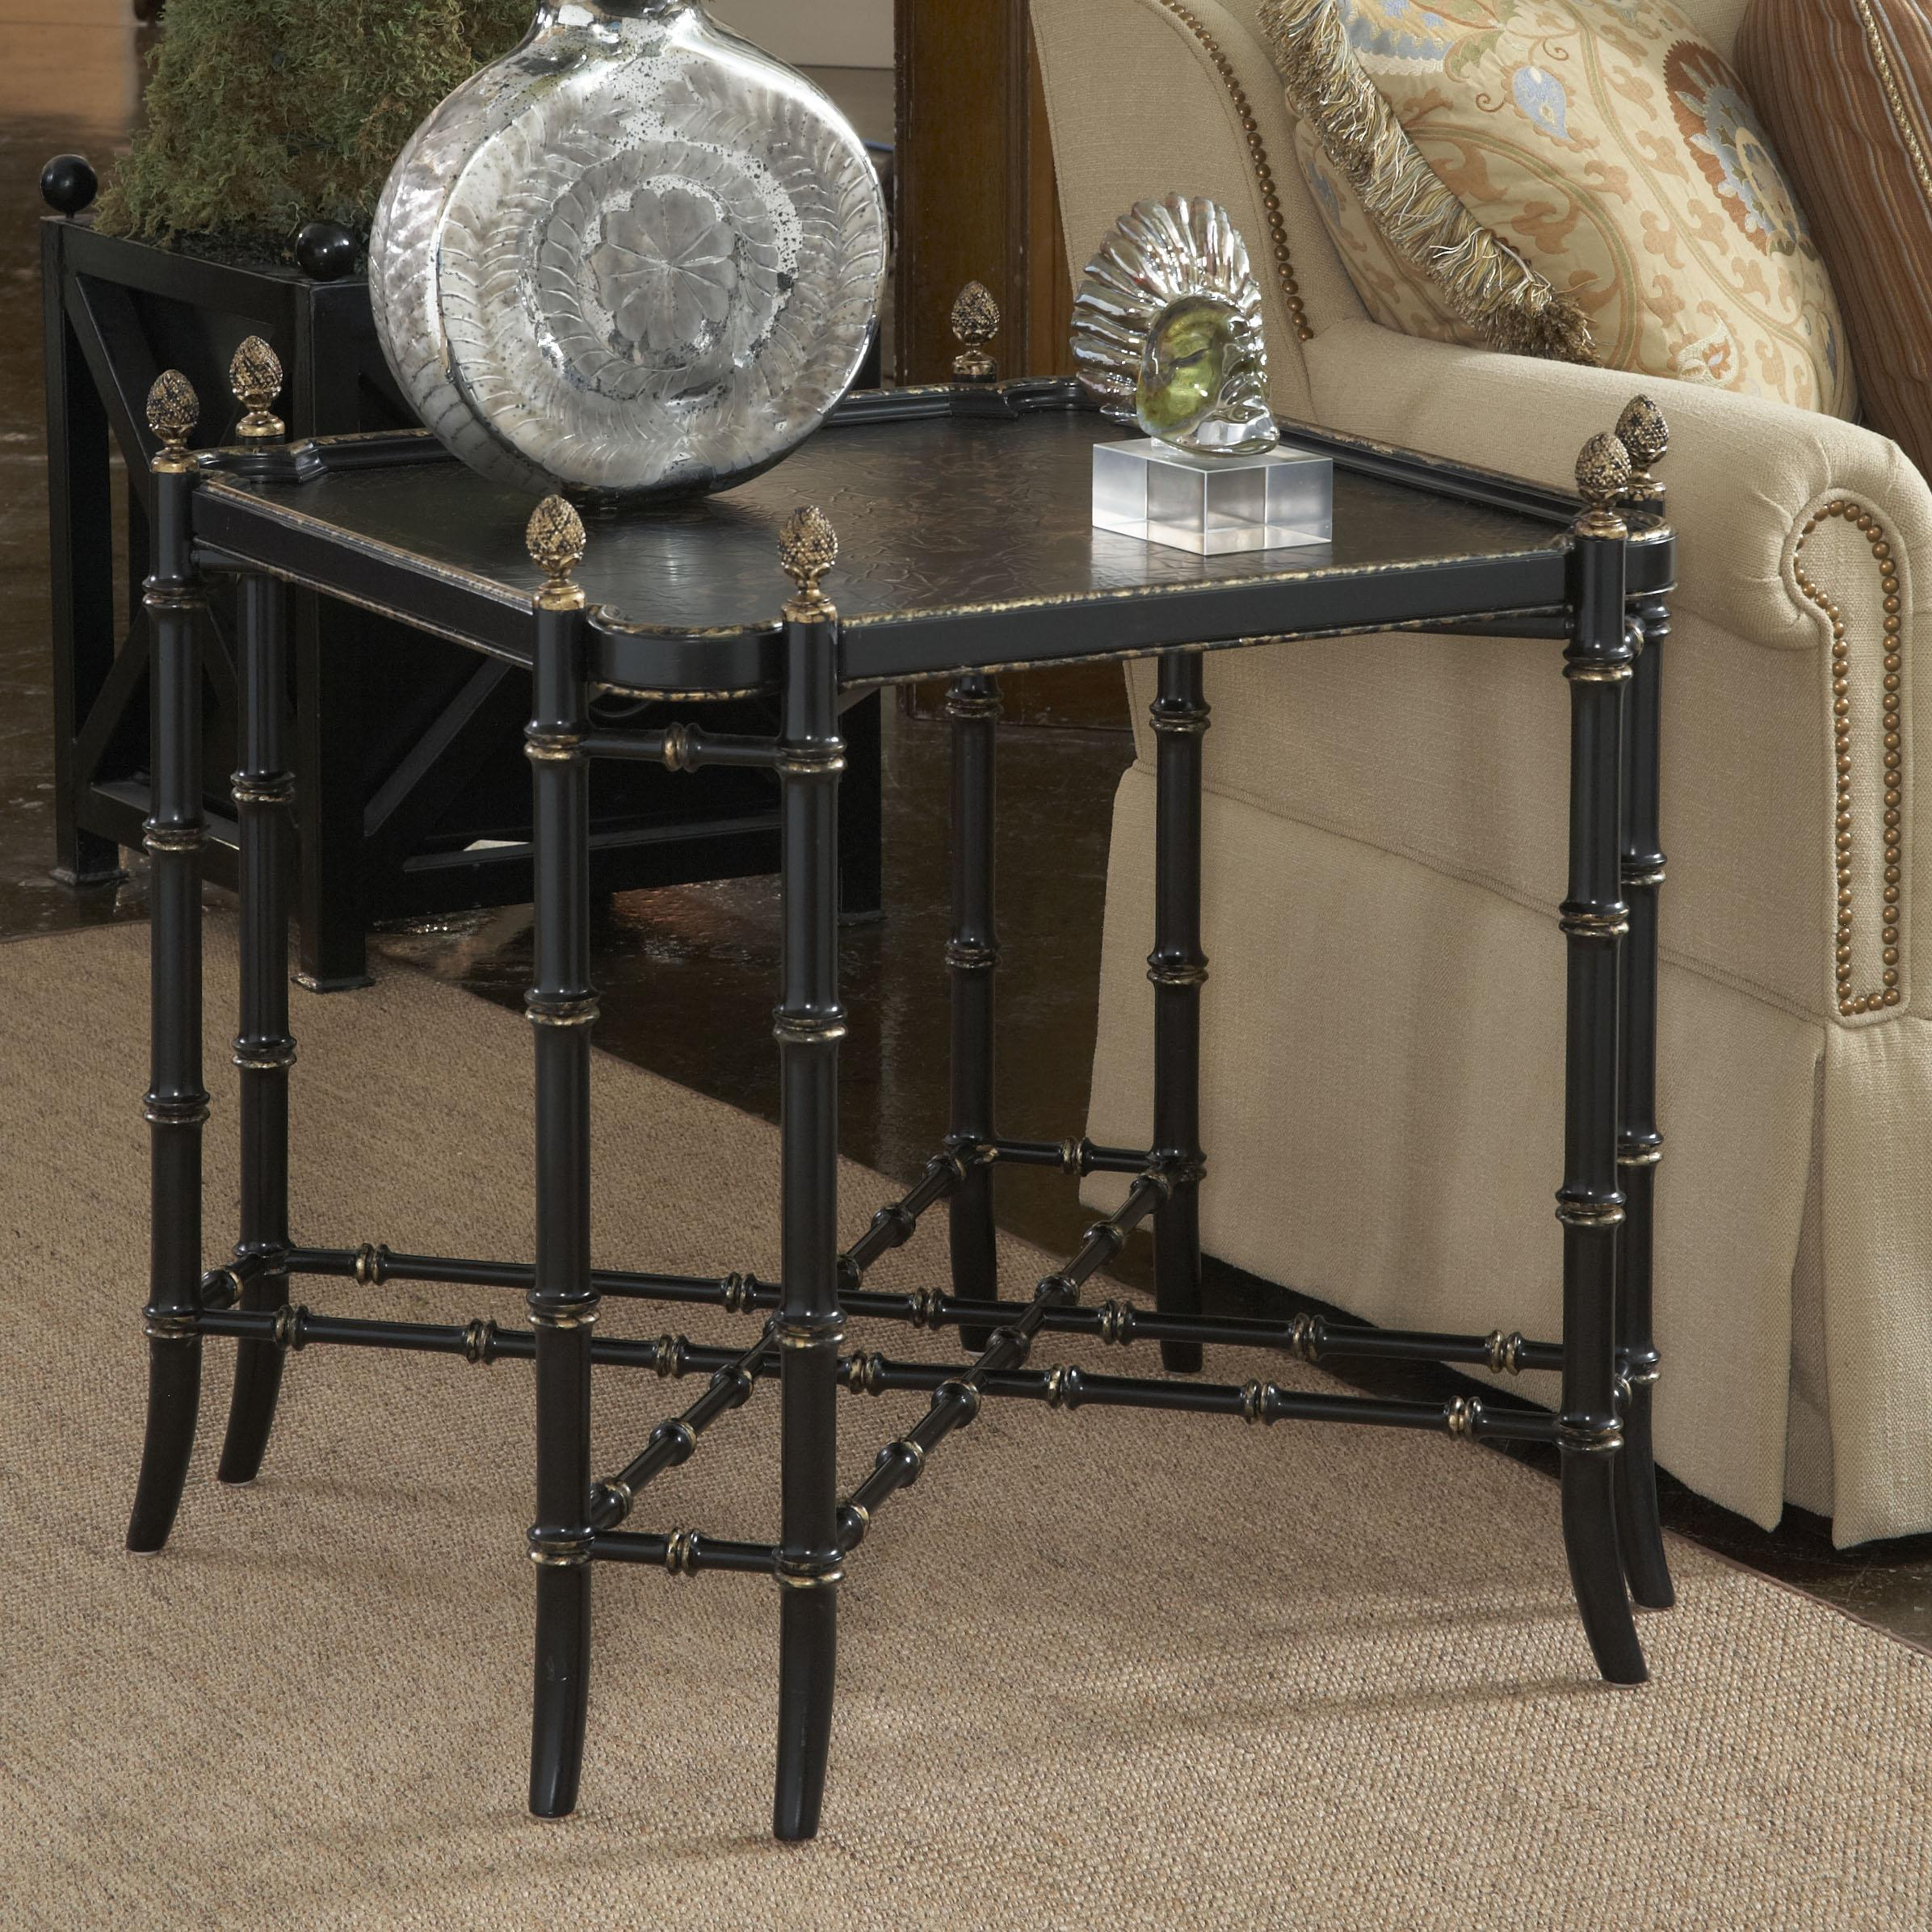 New London Chinoiserie Lamp Table With Black And Gold